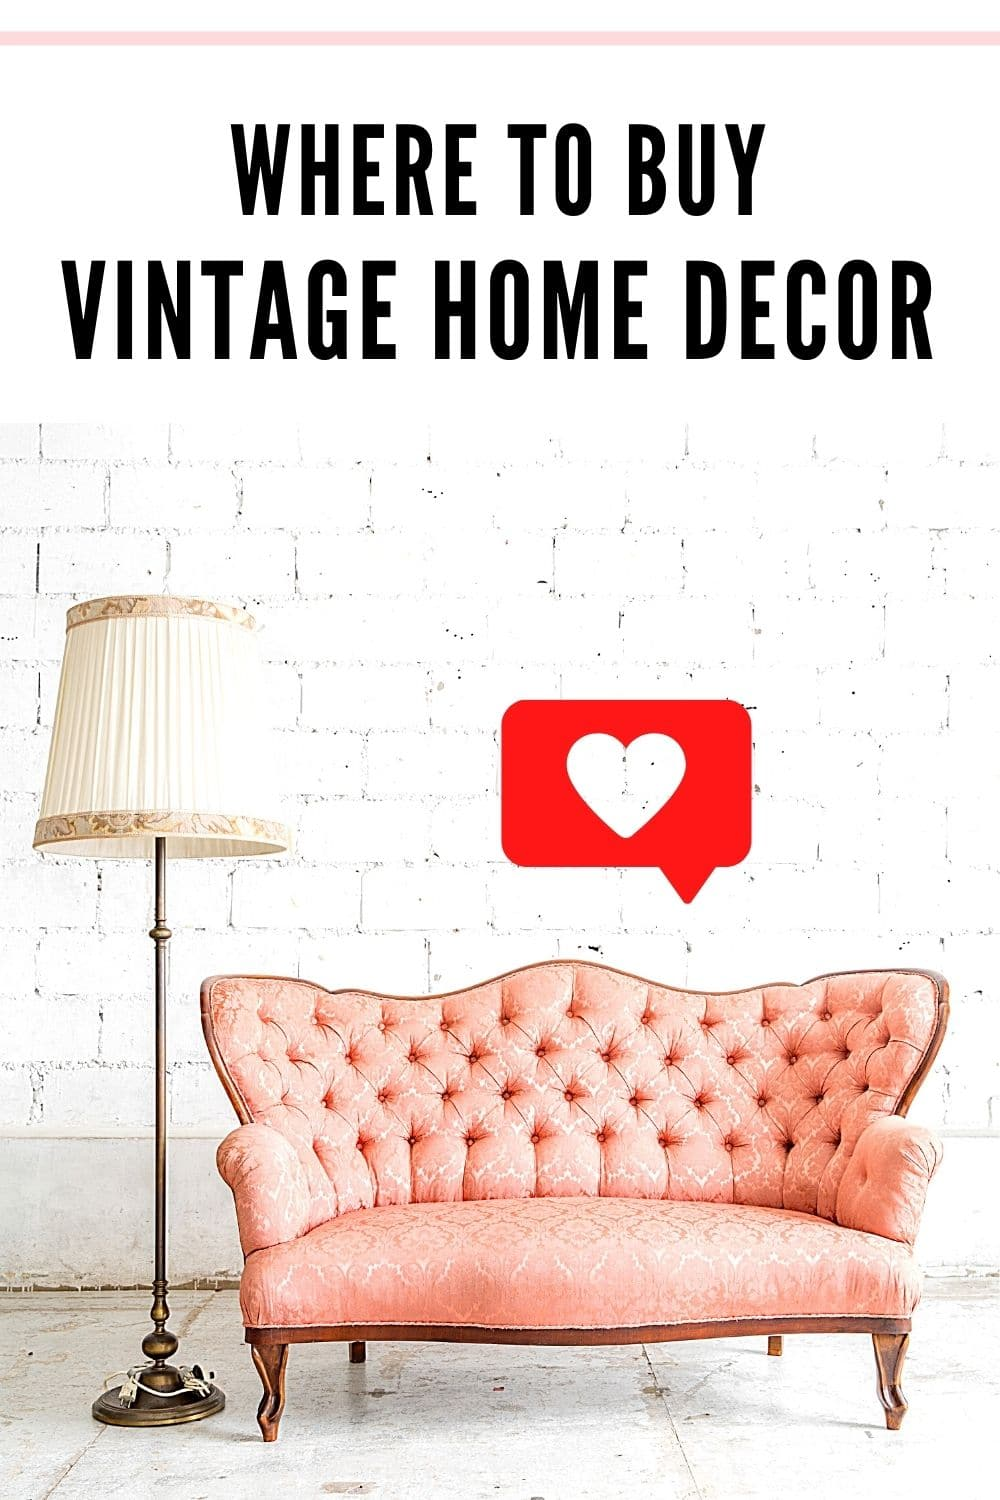 TOP 5 PLACES TO BUY VINTAGE HOME DECOR